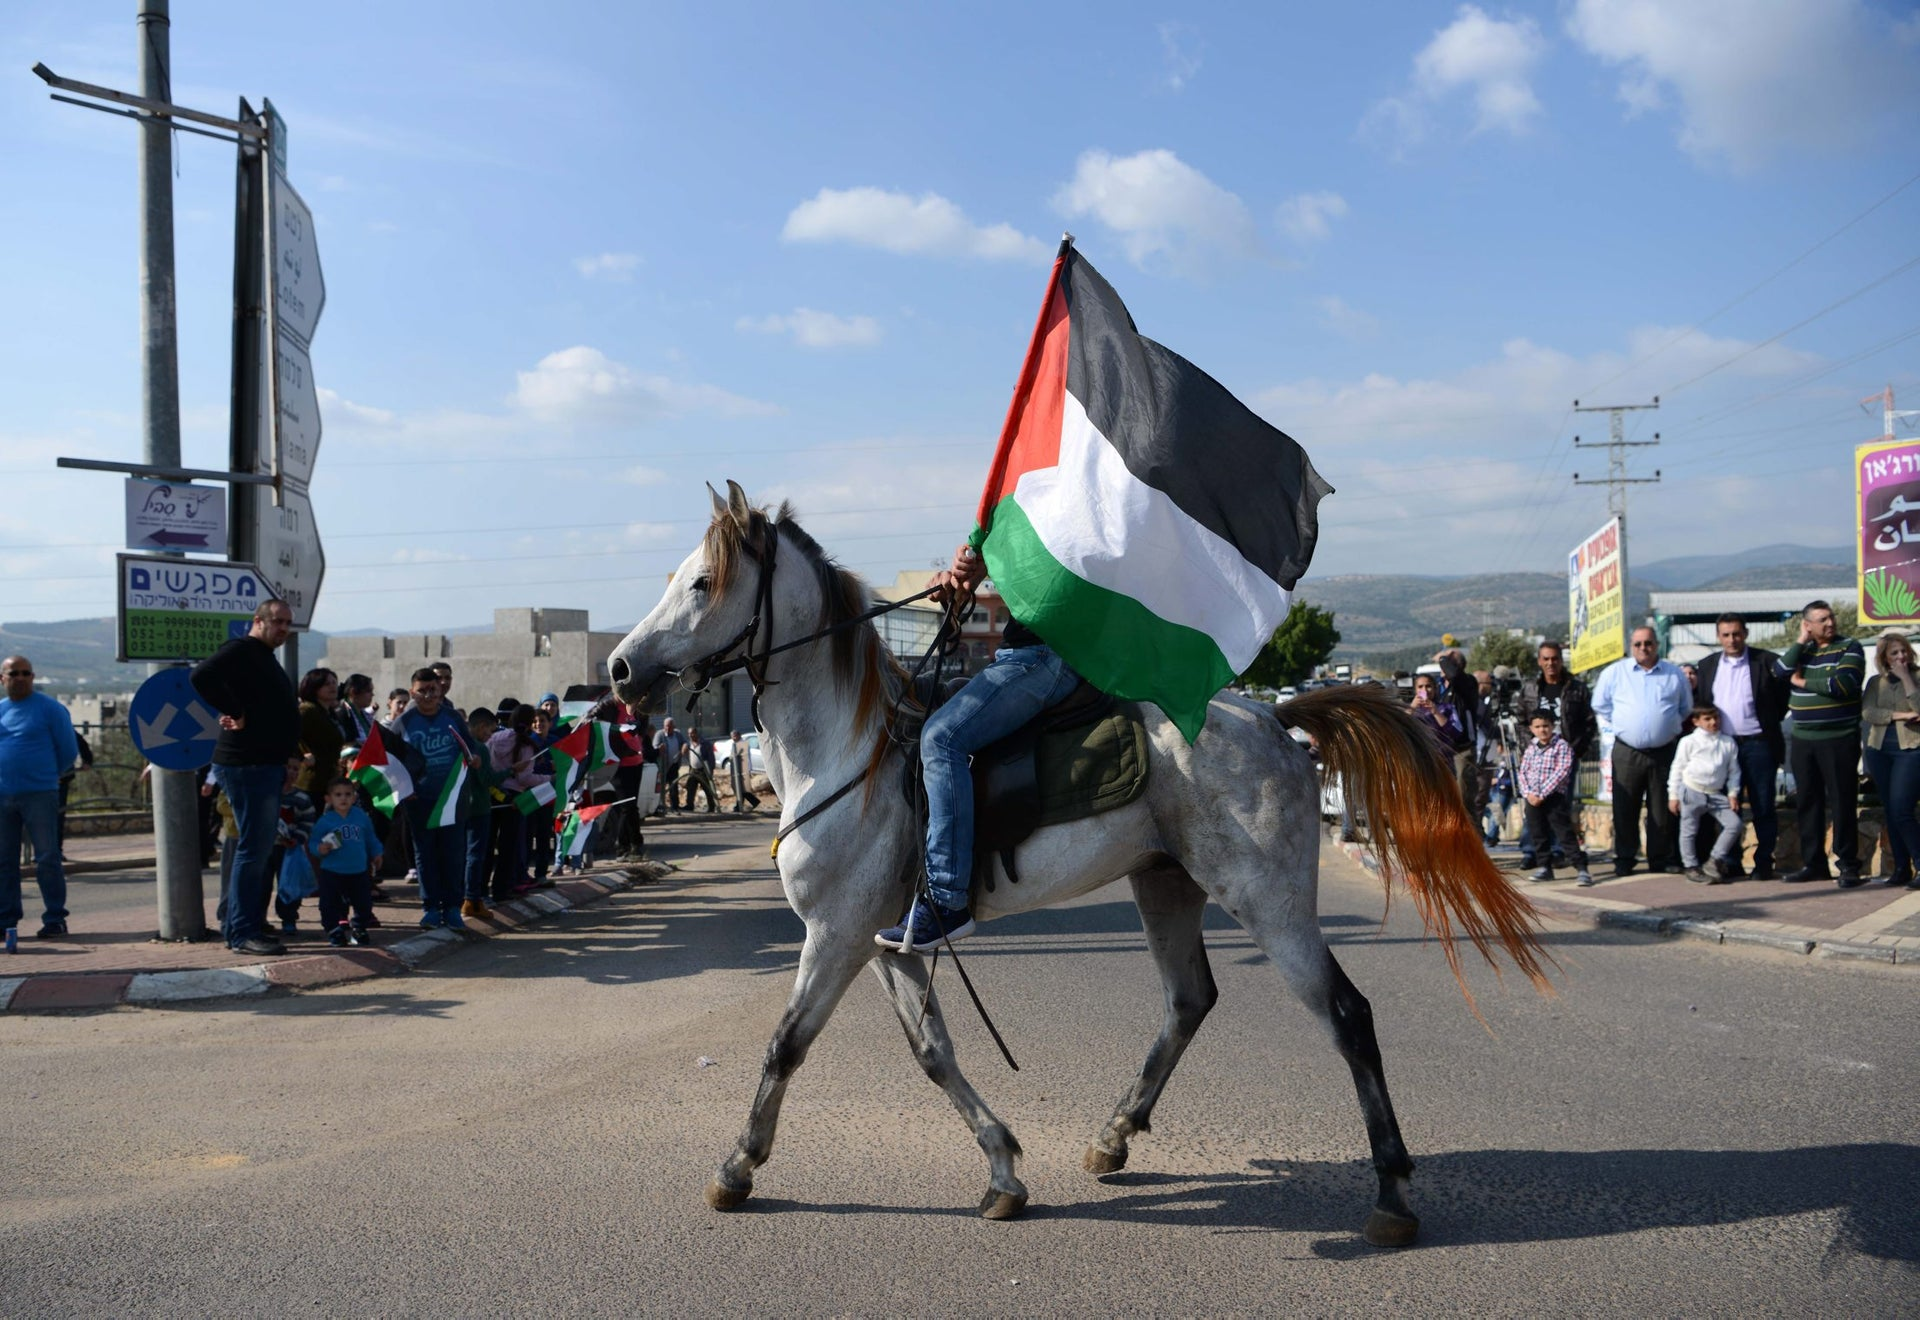 A man on a horse with a Palestinian flag participates in a march marking Land Day in the village of Arabeh, March 30, 2016.